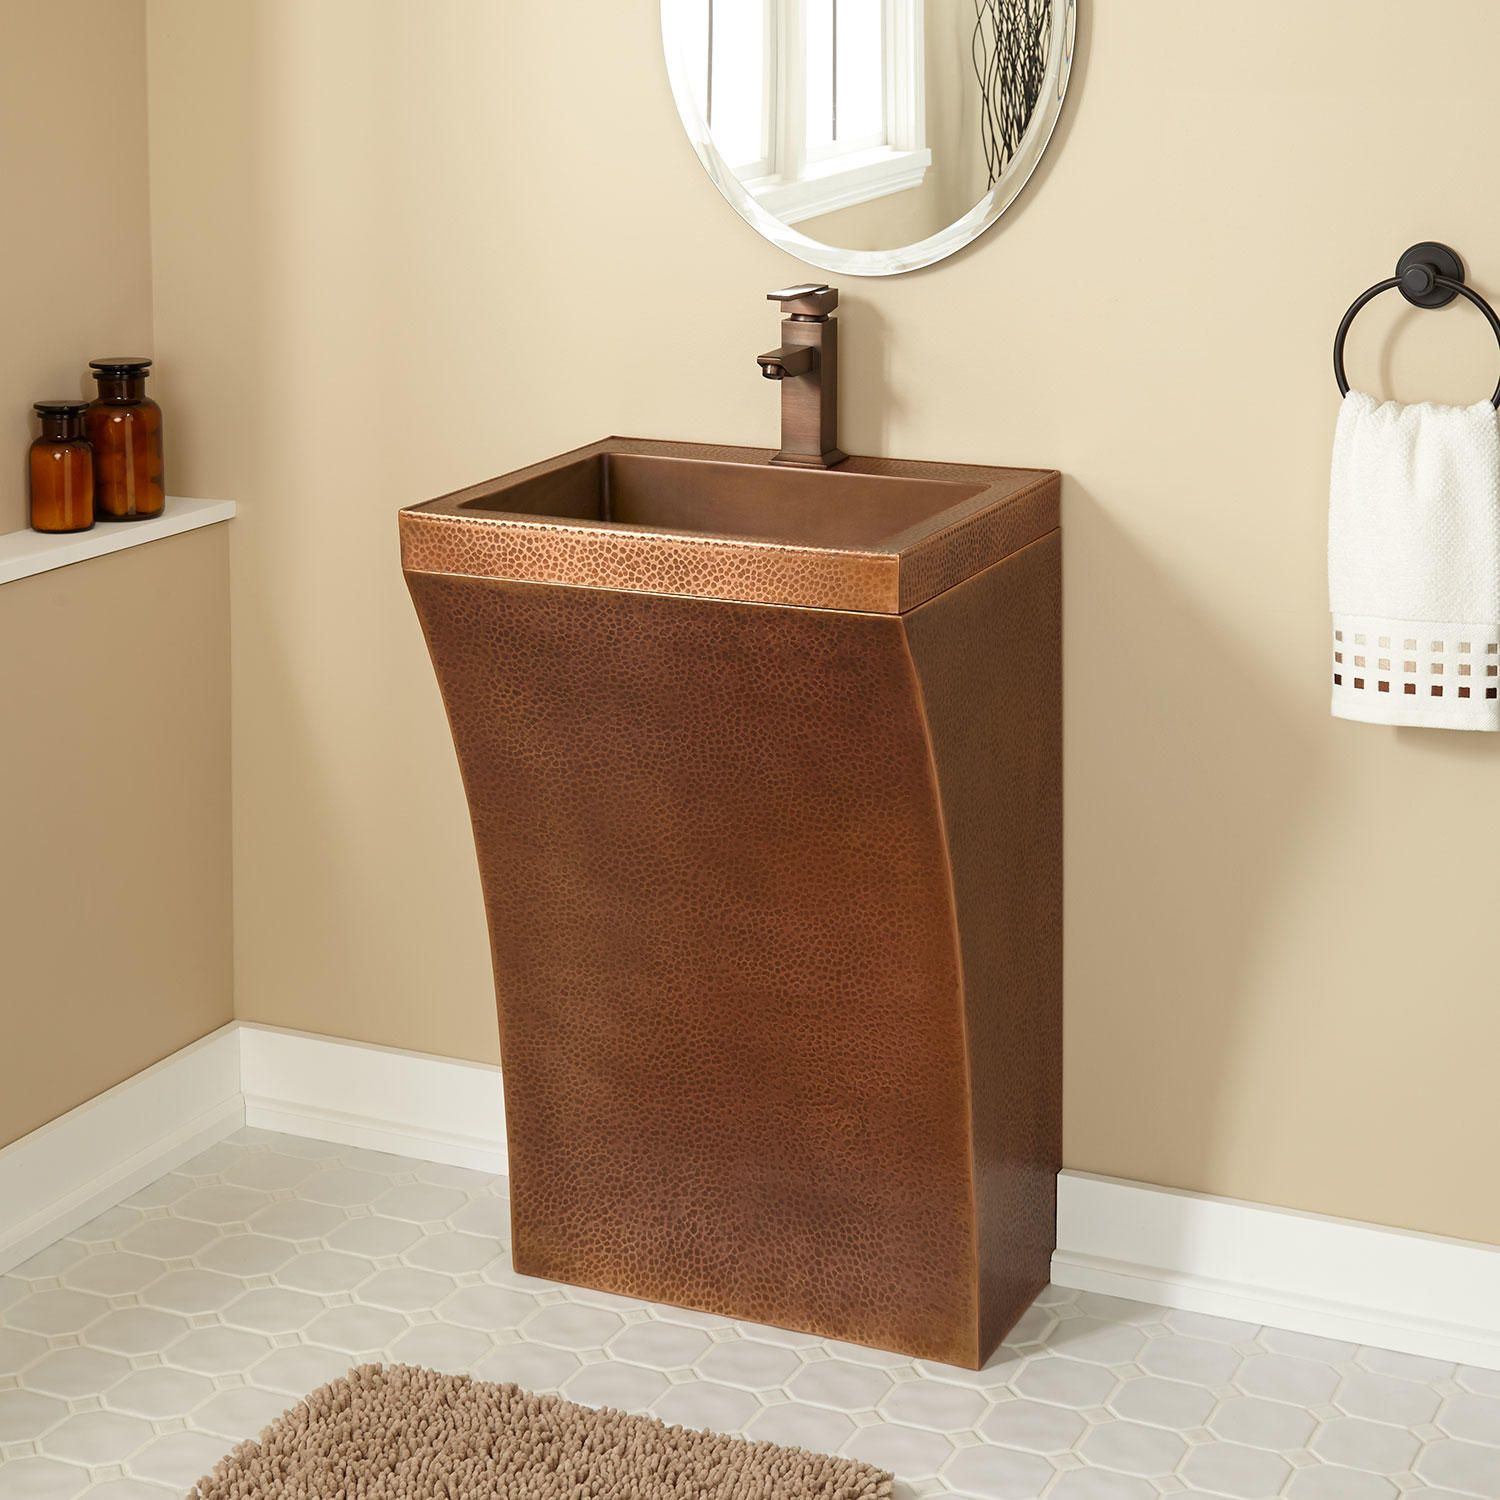 Square Smooth Copper Pedestal Sink Sinks Bathroom